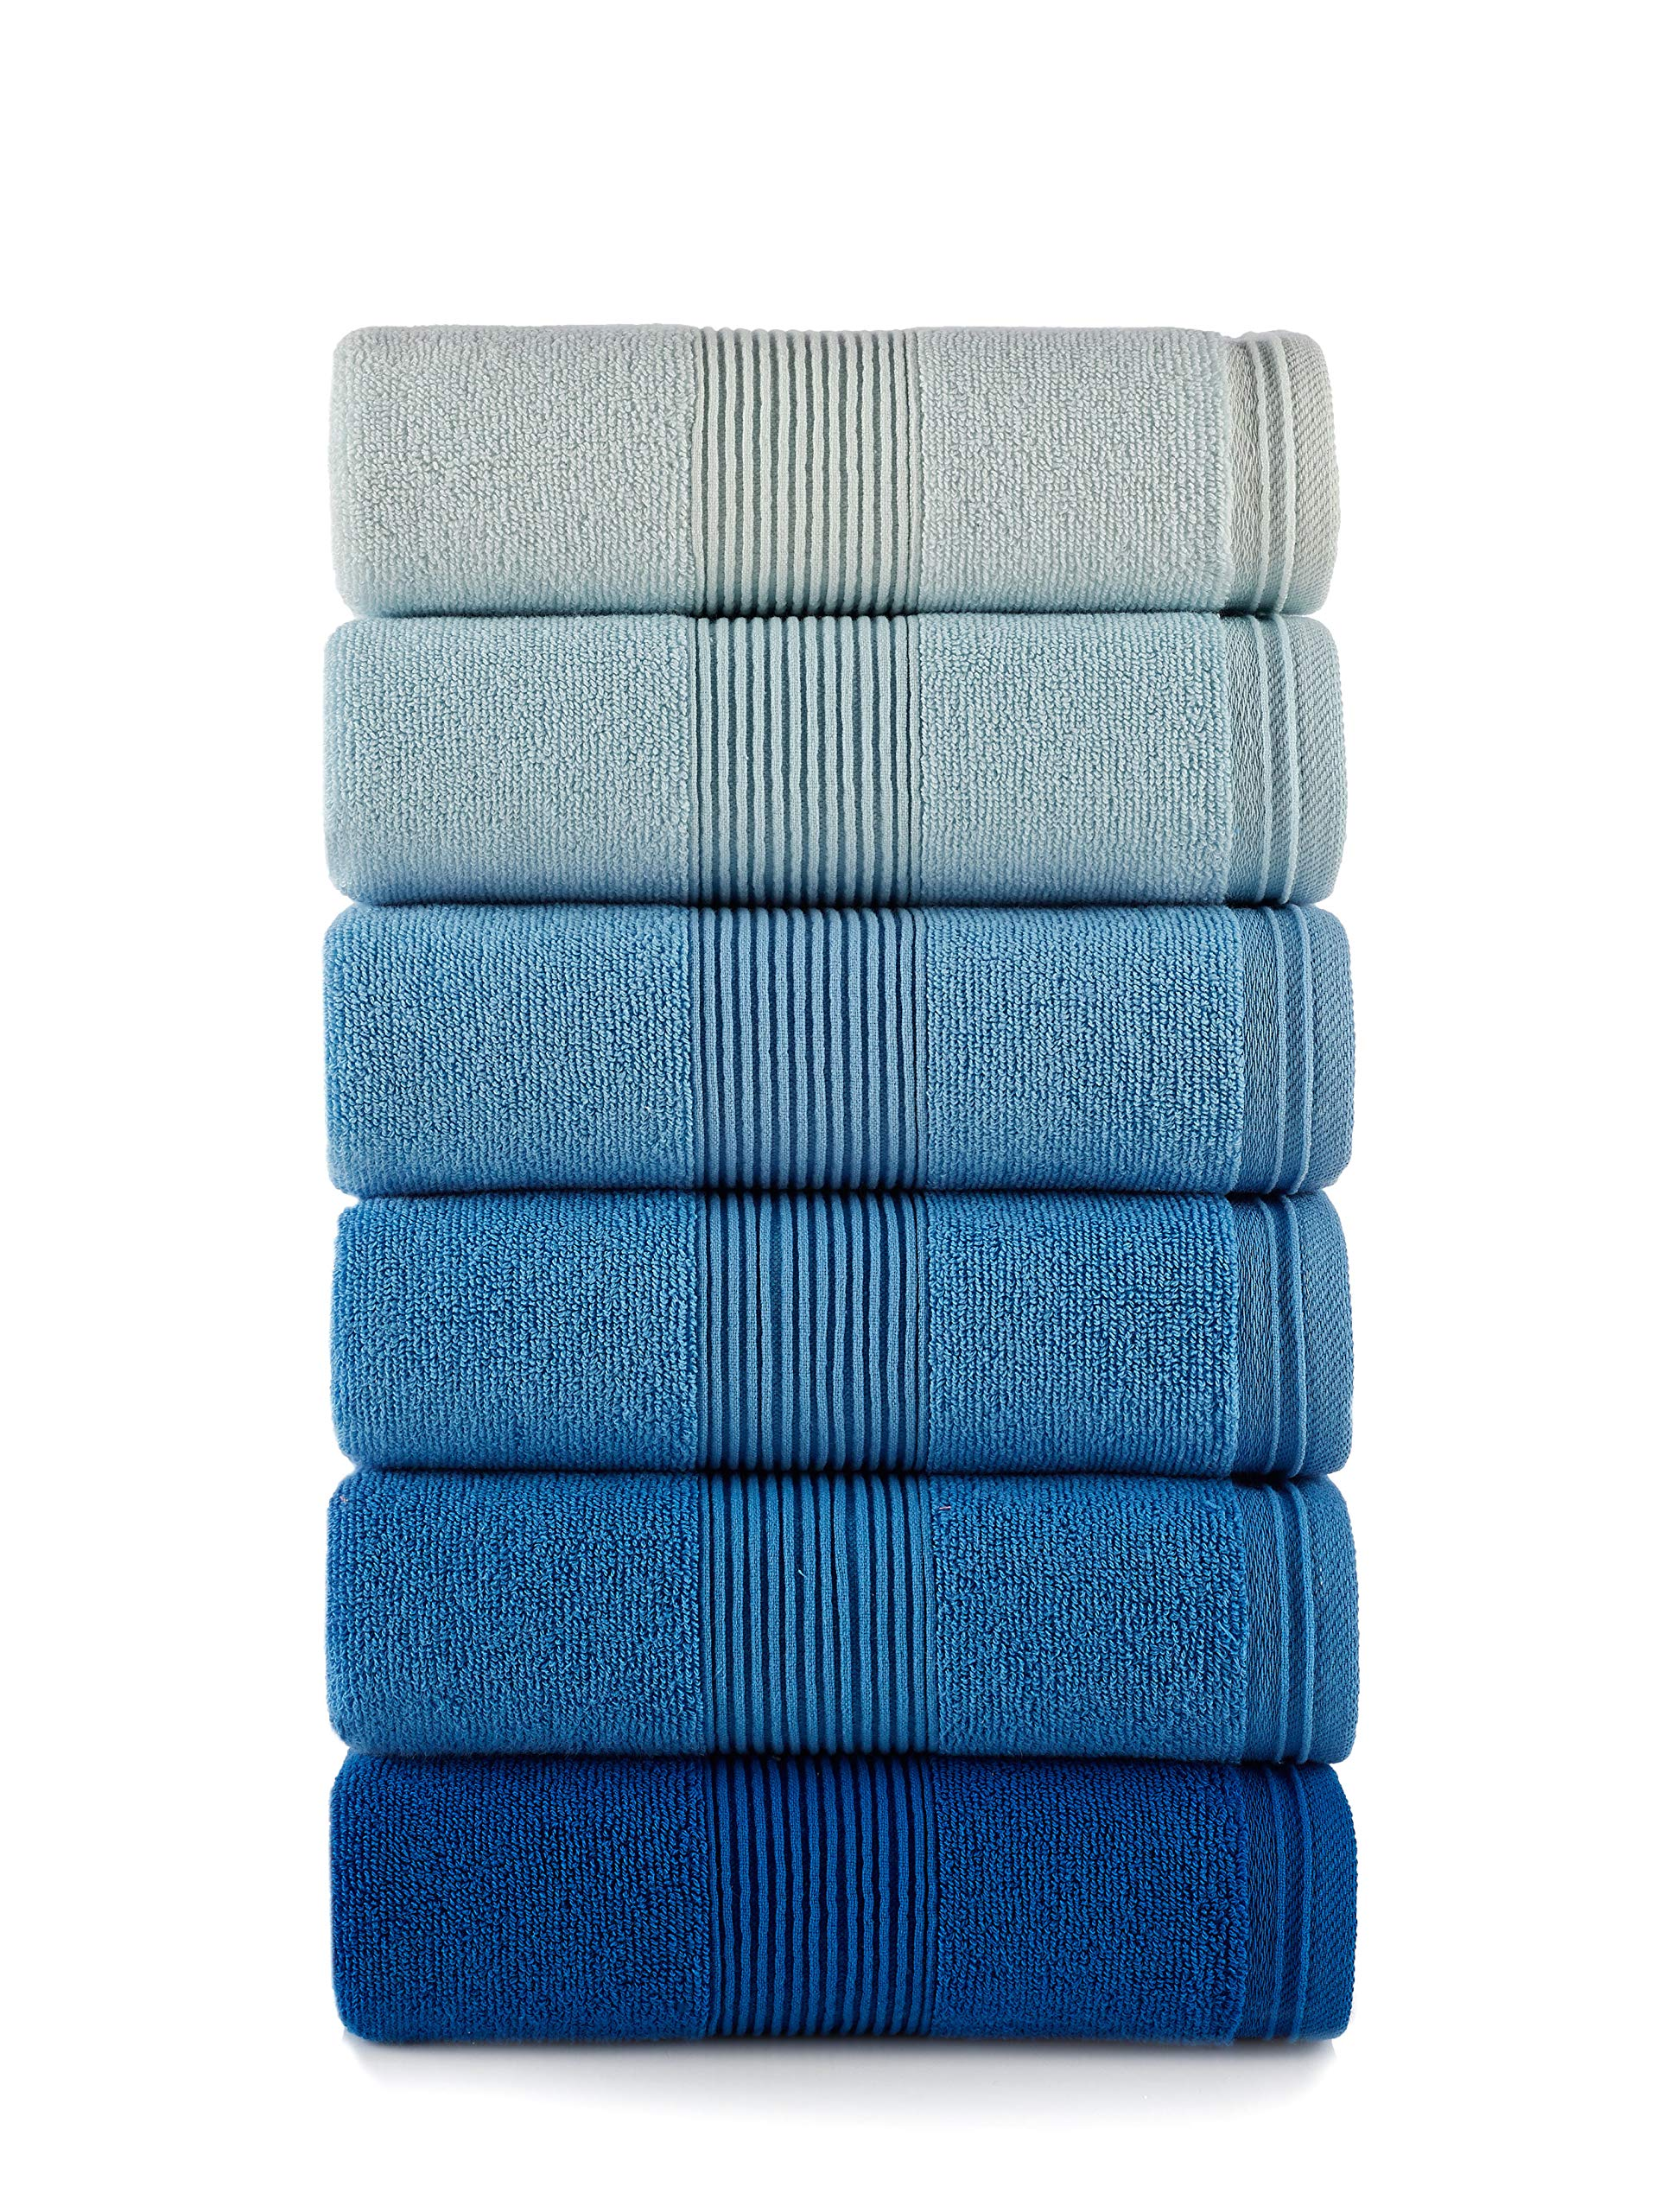 Astrea Textiles Hand Towels Set of 6 100% Cotton for Bathroom Hotel Spa Made from Turkish Cotton (Blue, 6)